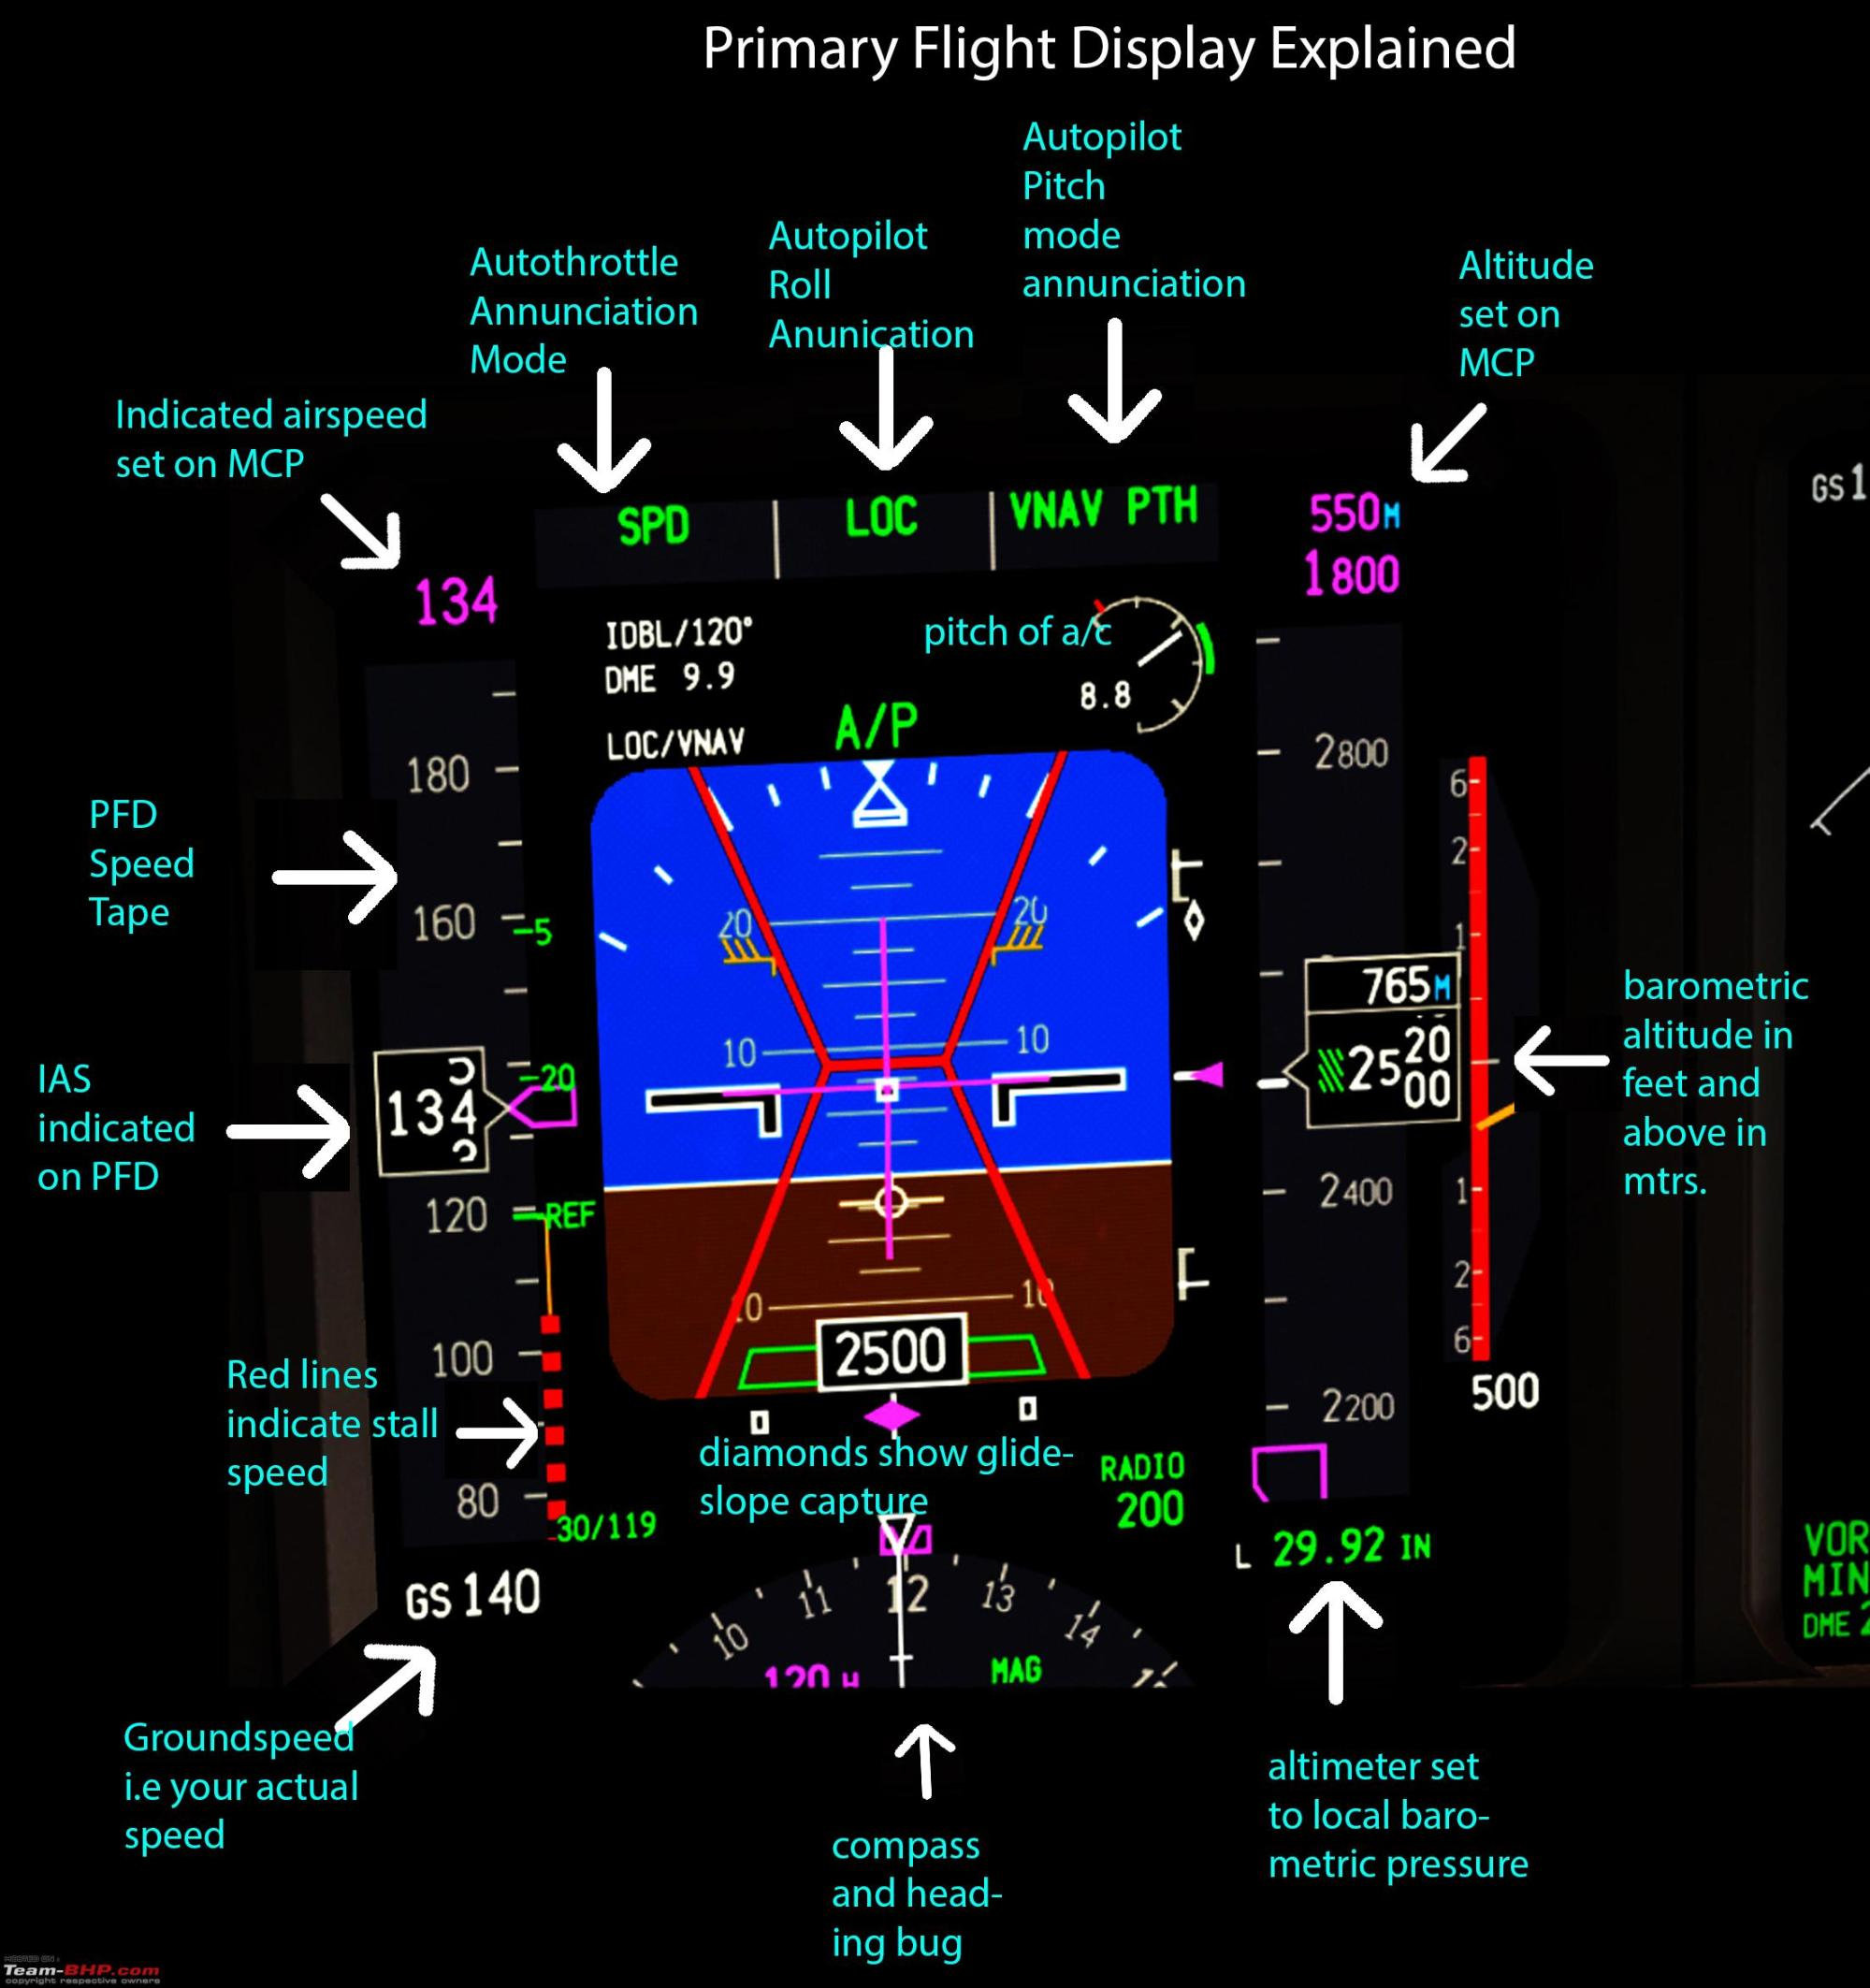 hight resolution of boeing 777 engine diagram wiring library boeing 747 schematic boeing 777 pilot s review pfd explanation jpg